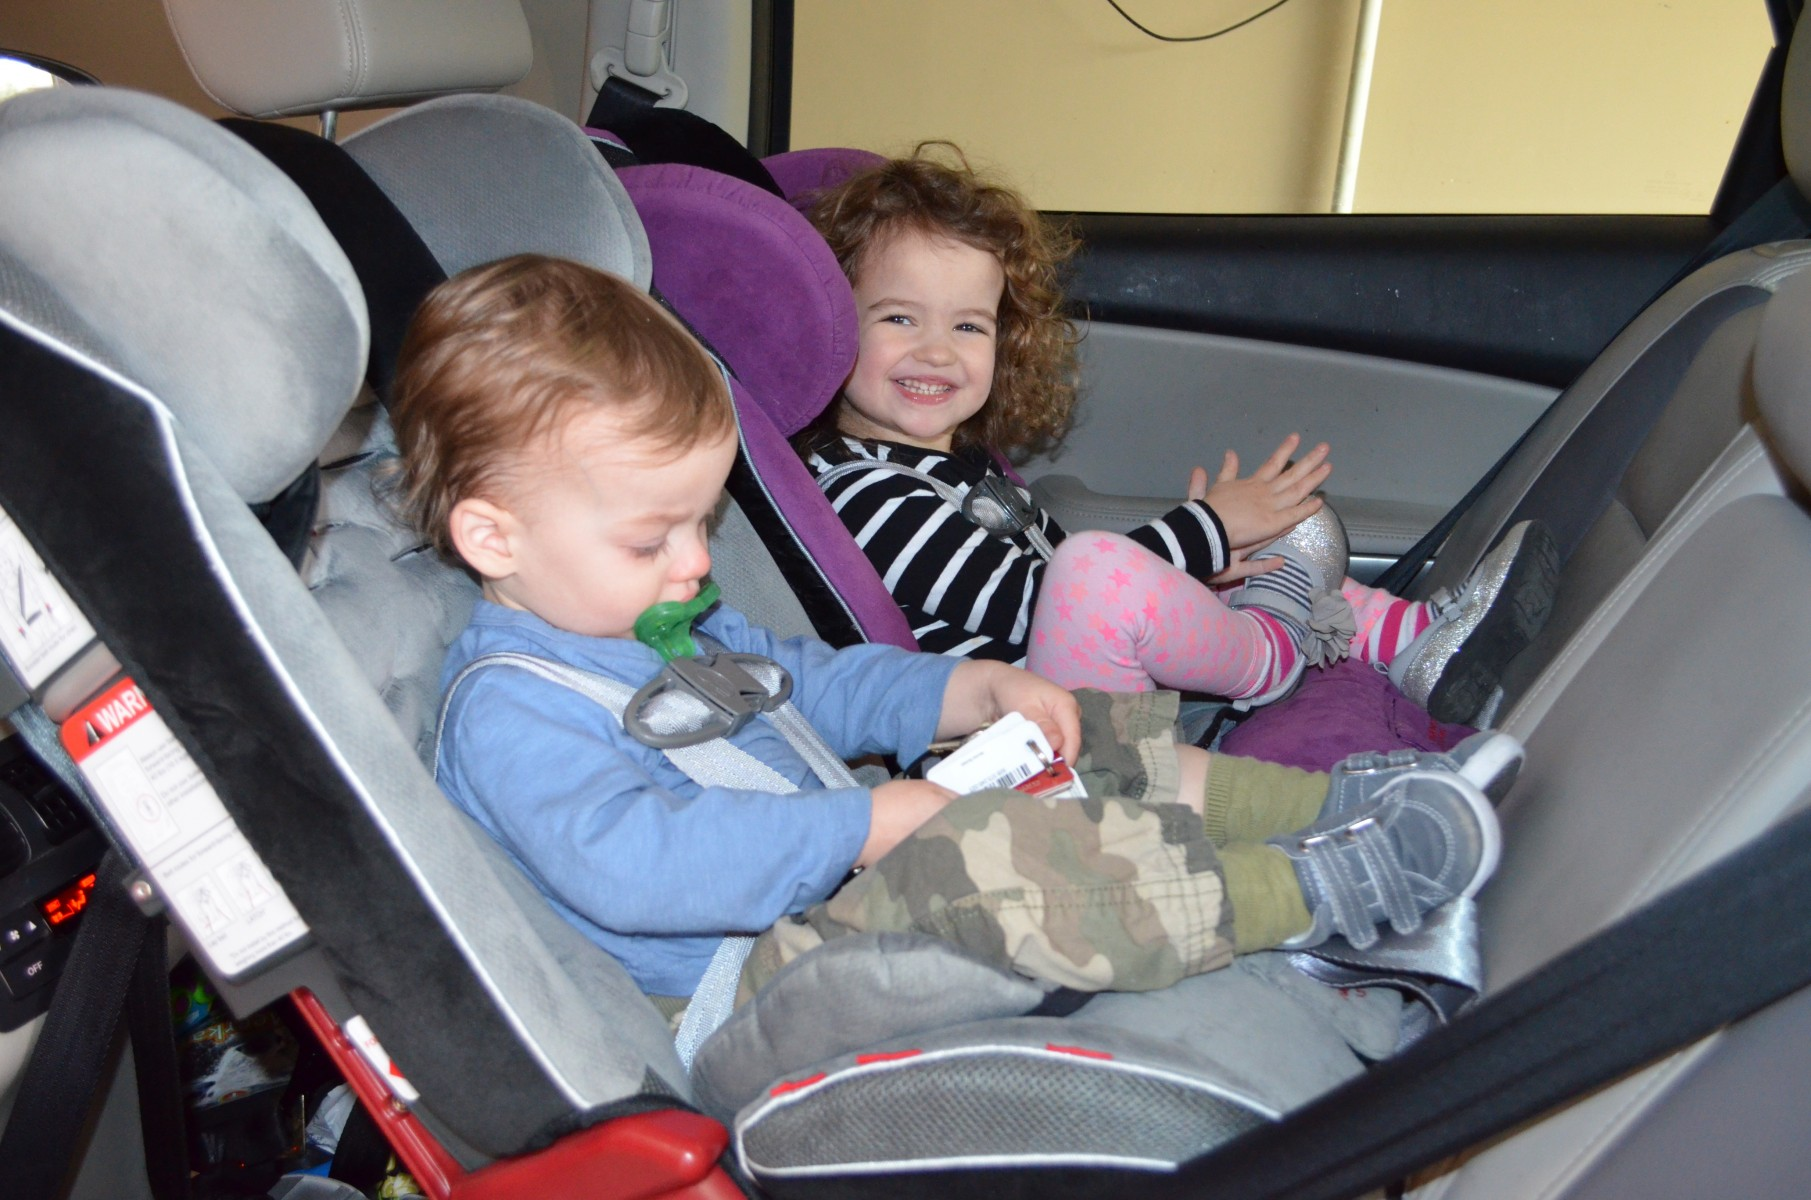 Rear Facing Car Seat Age 4 Age Rule May Grow For Children In Rear Facing Car Seats